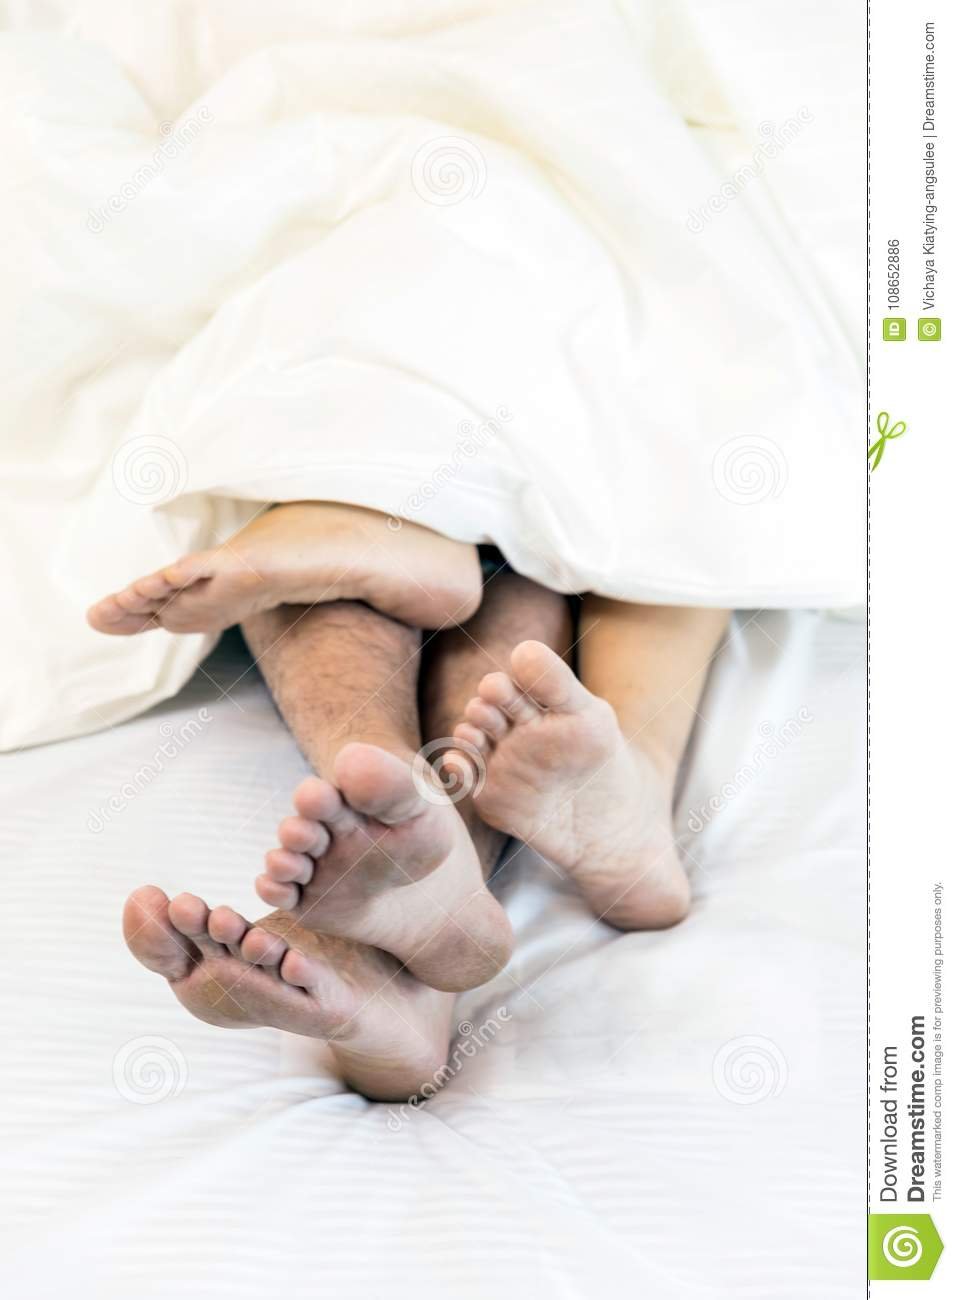 https www dreamstime com young sexy couples love lying bed hotel embracing white sheets close up legs romantic mood young sexy couples bed image108652886